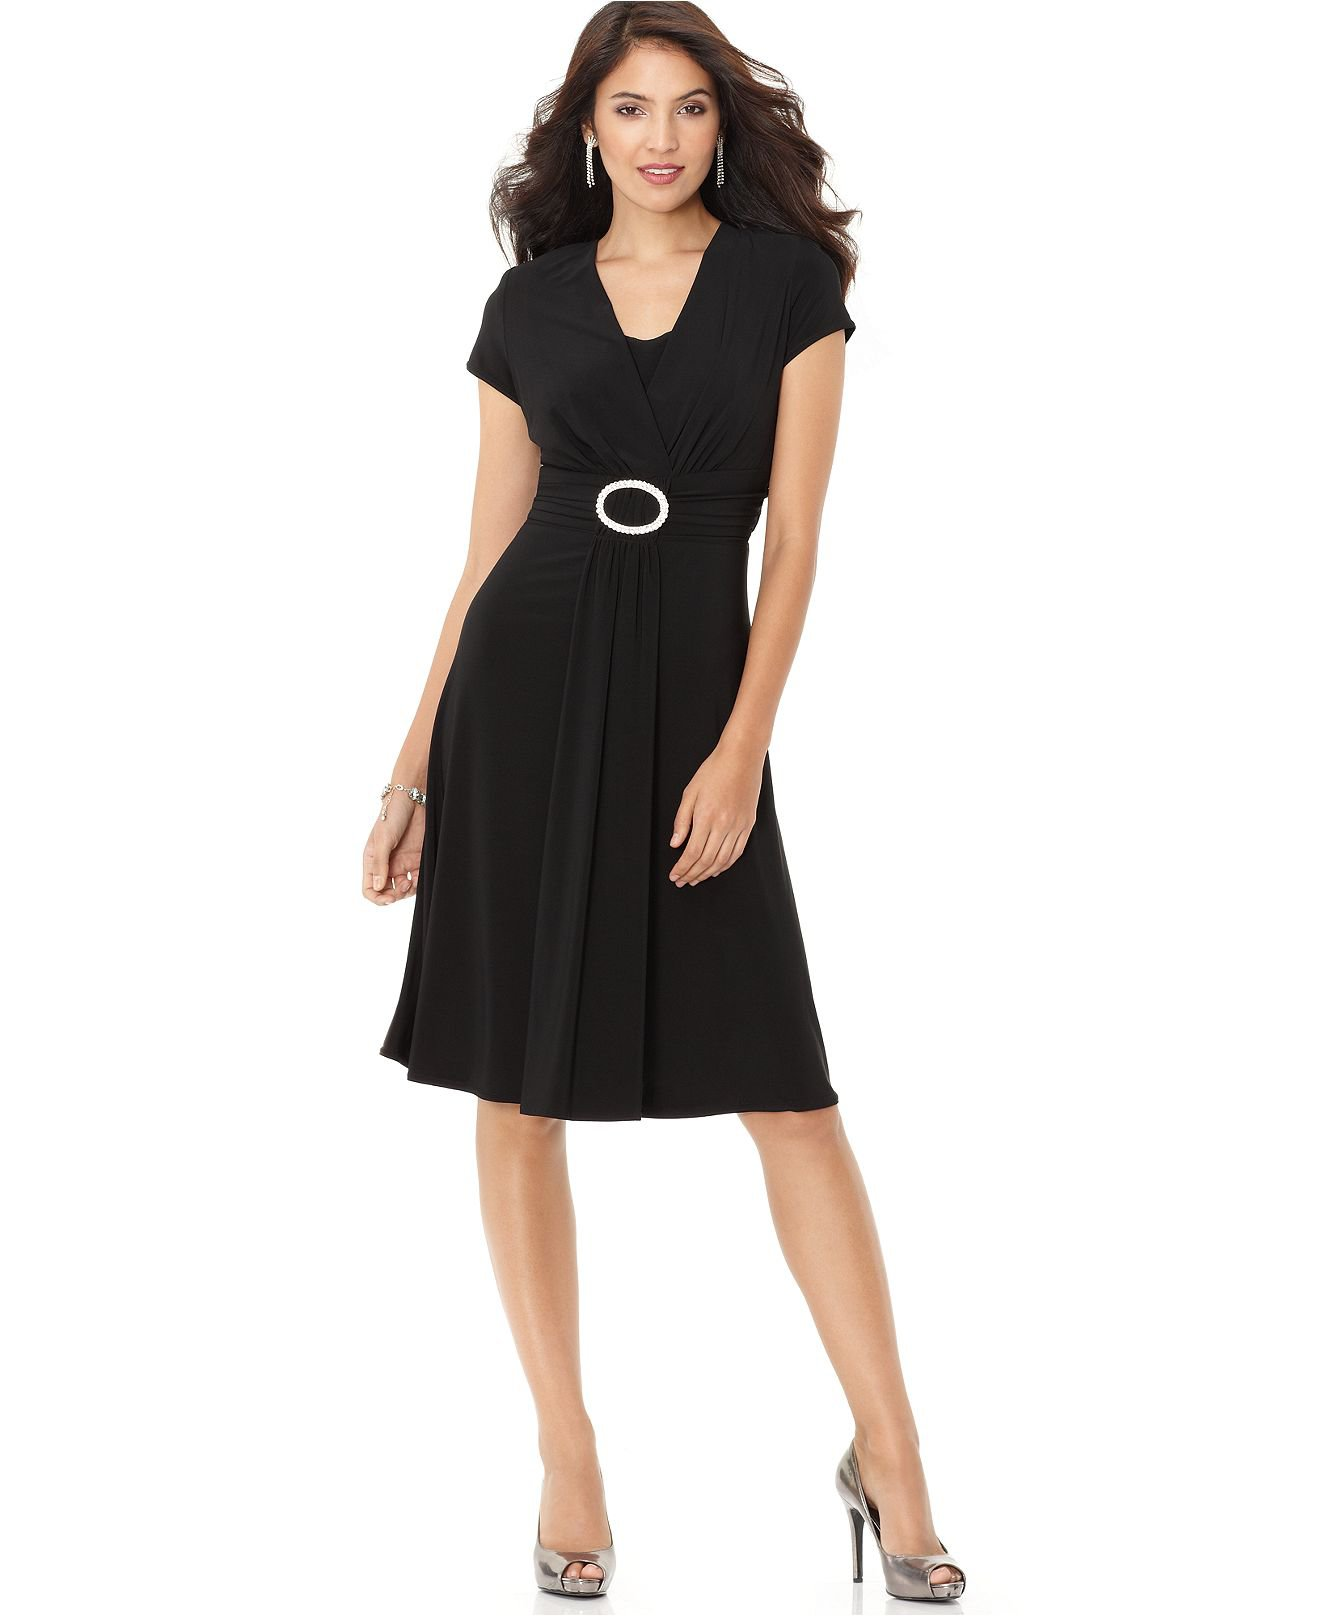 r m richards dress cap sleeve cocktail from macys if i had